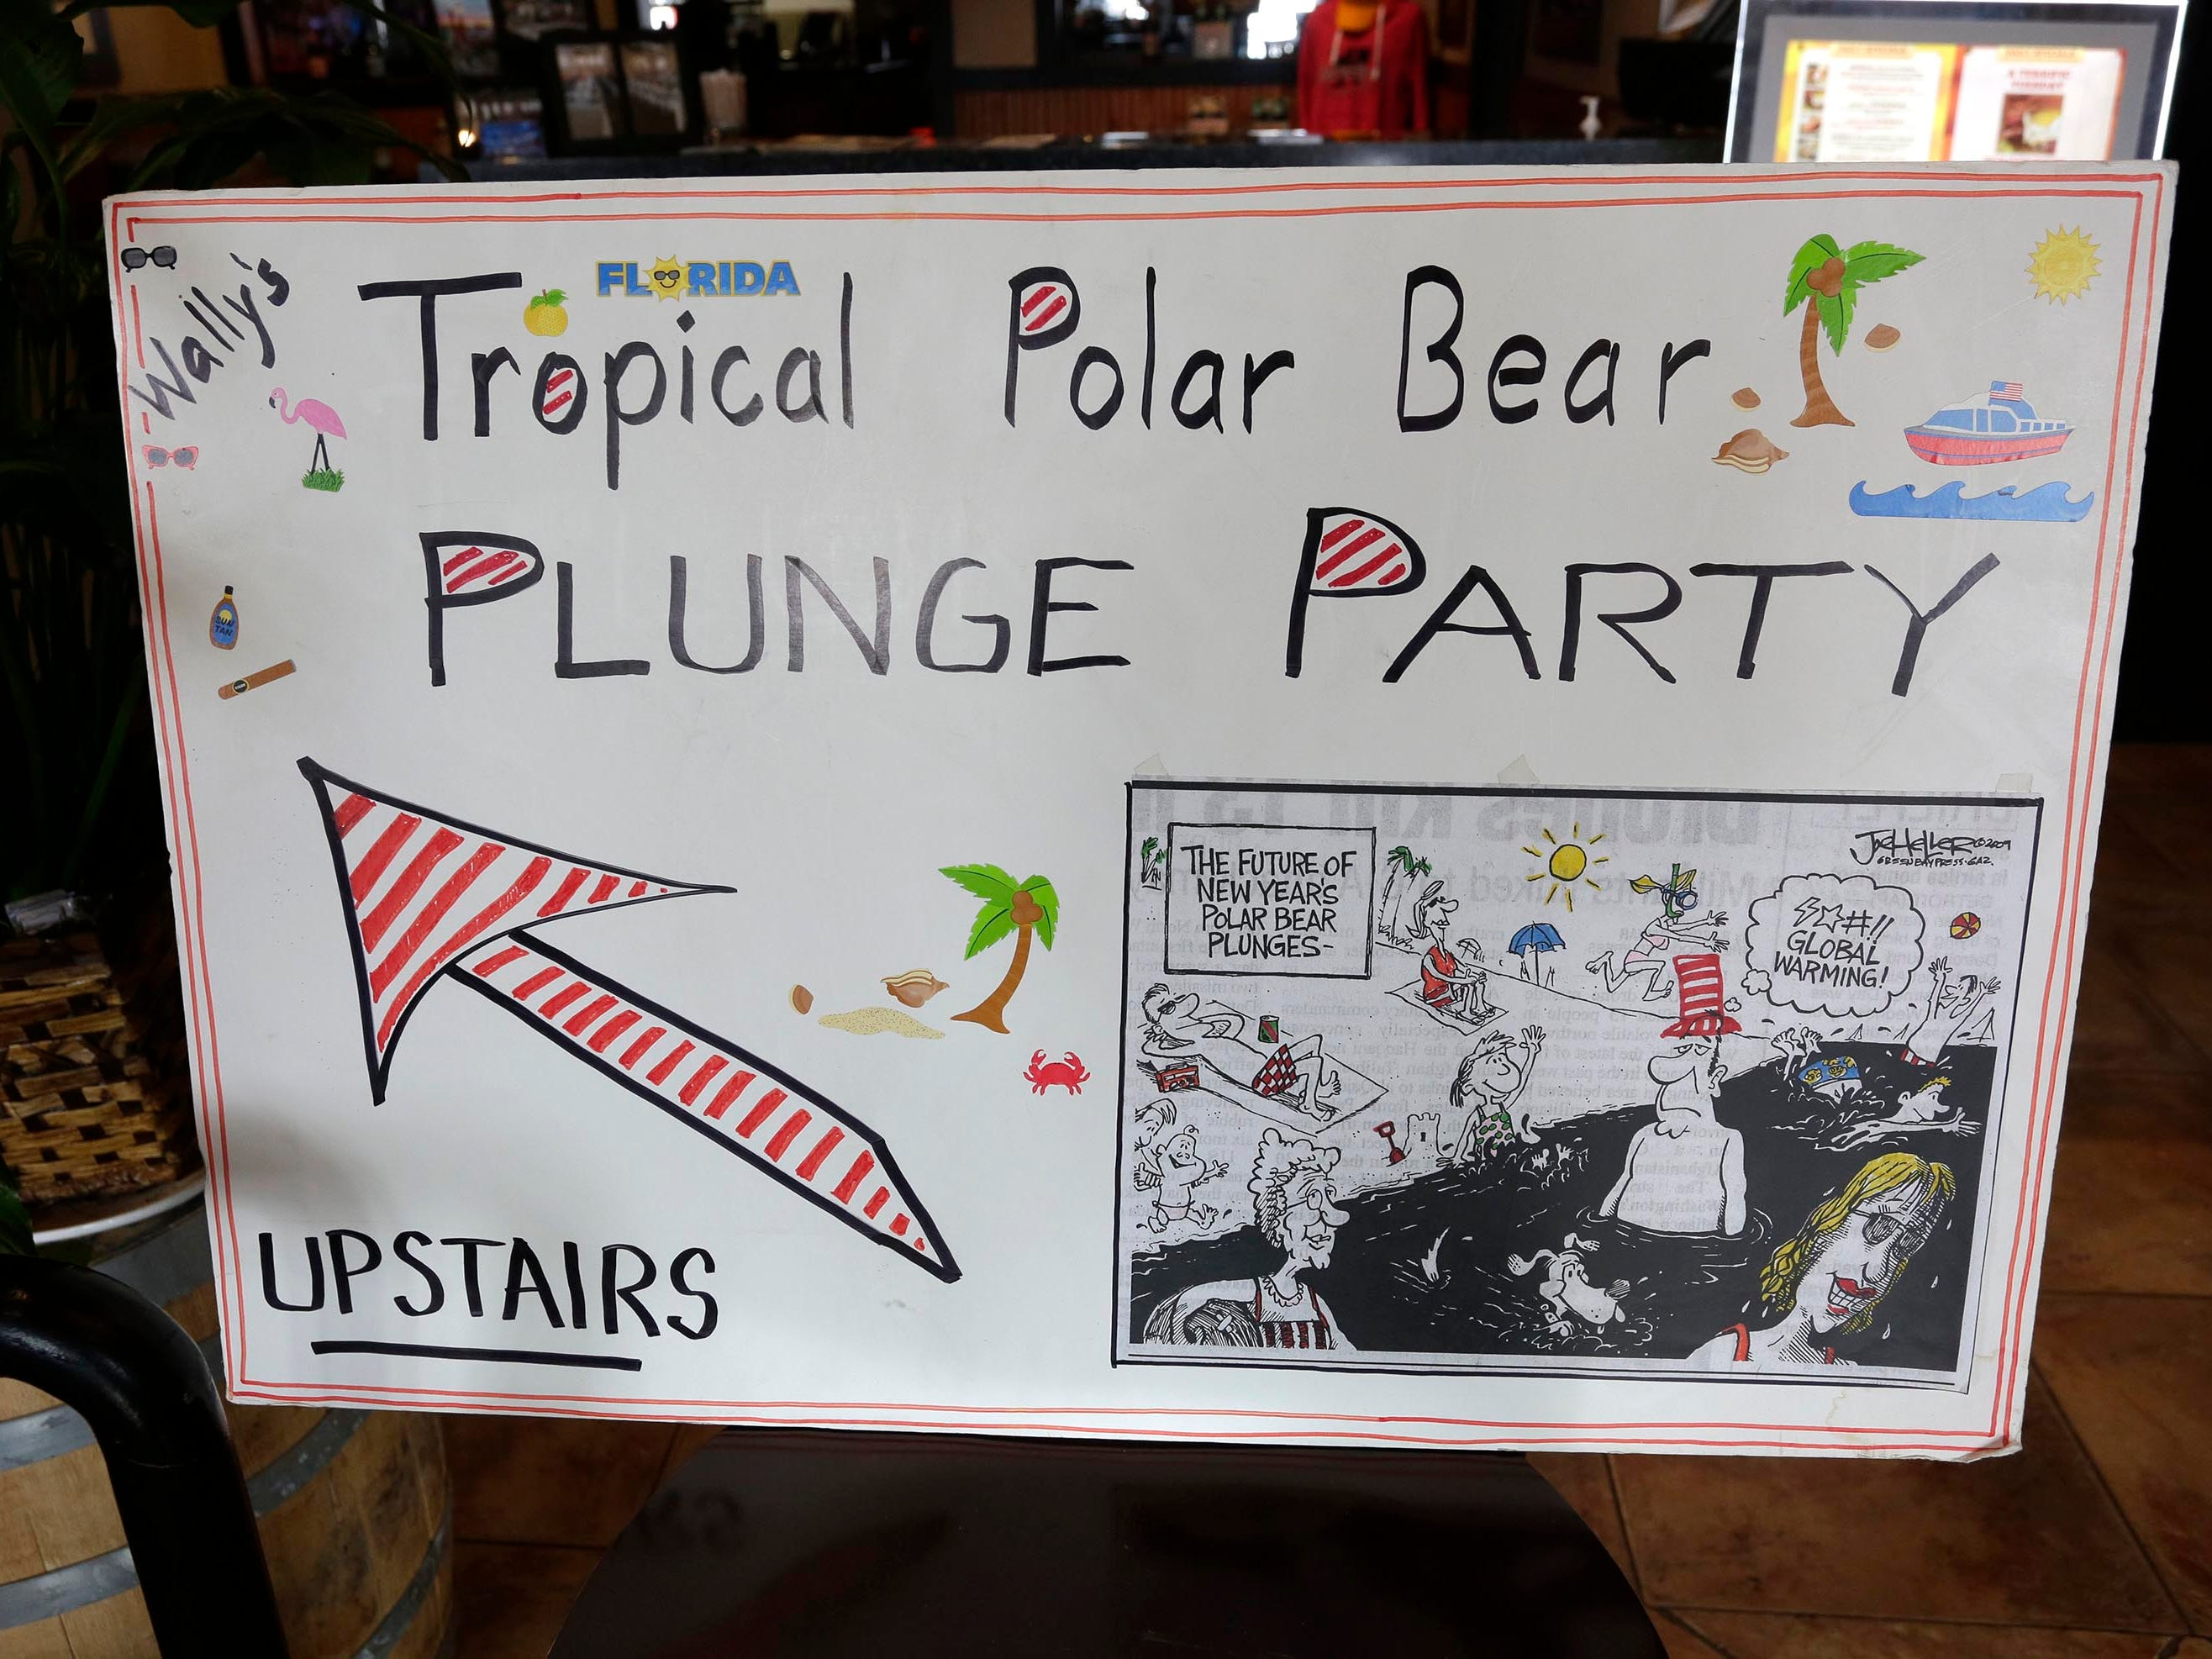 A sign leads the way for Wally Waldhart's Tropical Polar Bear Plunge Party at Sprechers, Tuesday, January 1, 2019, in Sheboygan, Wis.